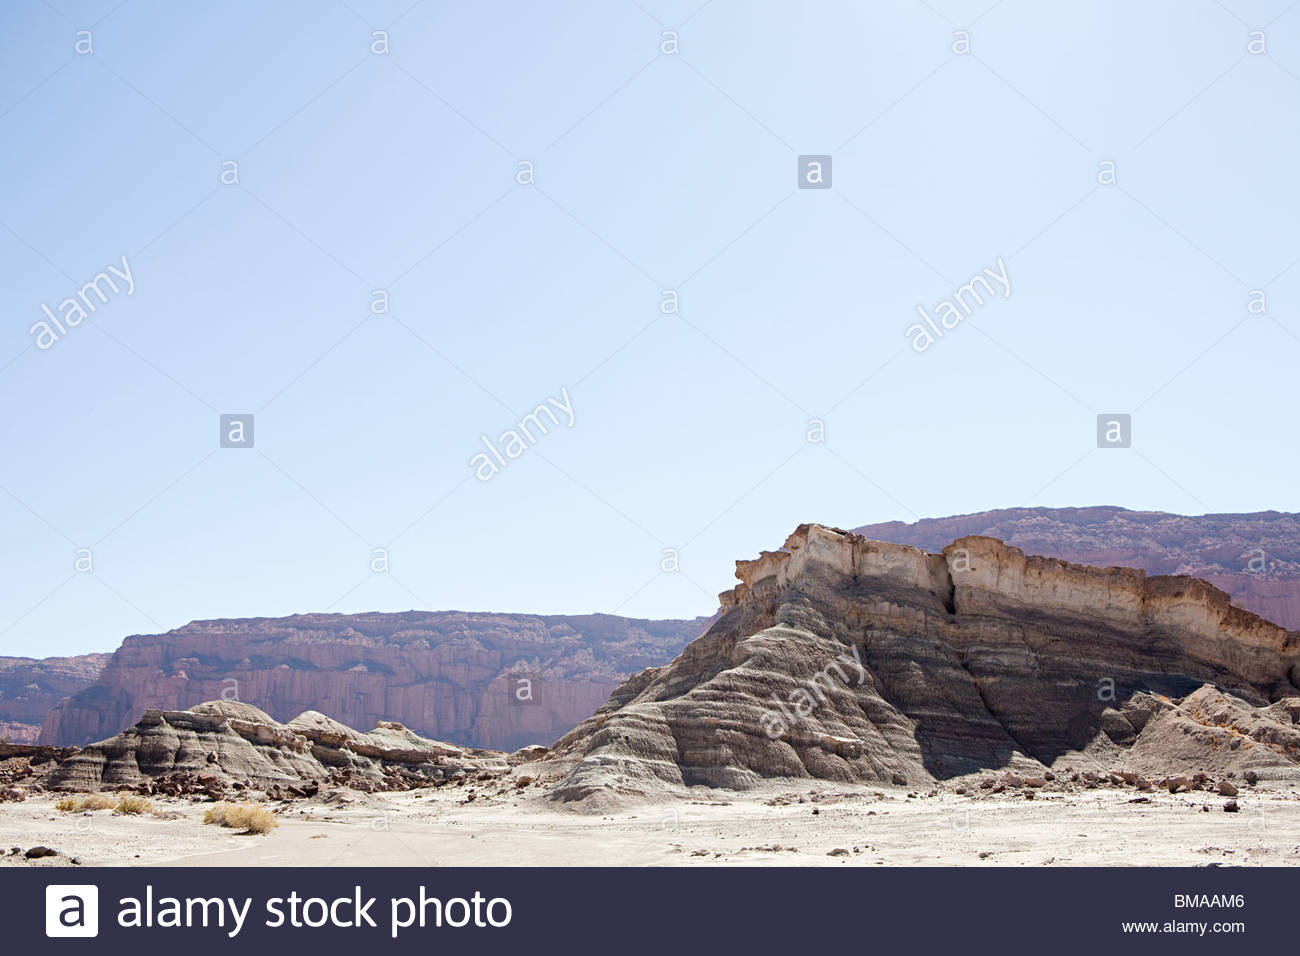 Rock formation in san juan province of argentina - Stock Image